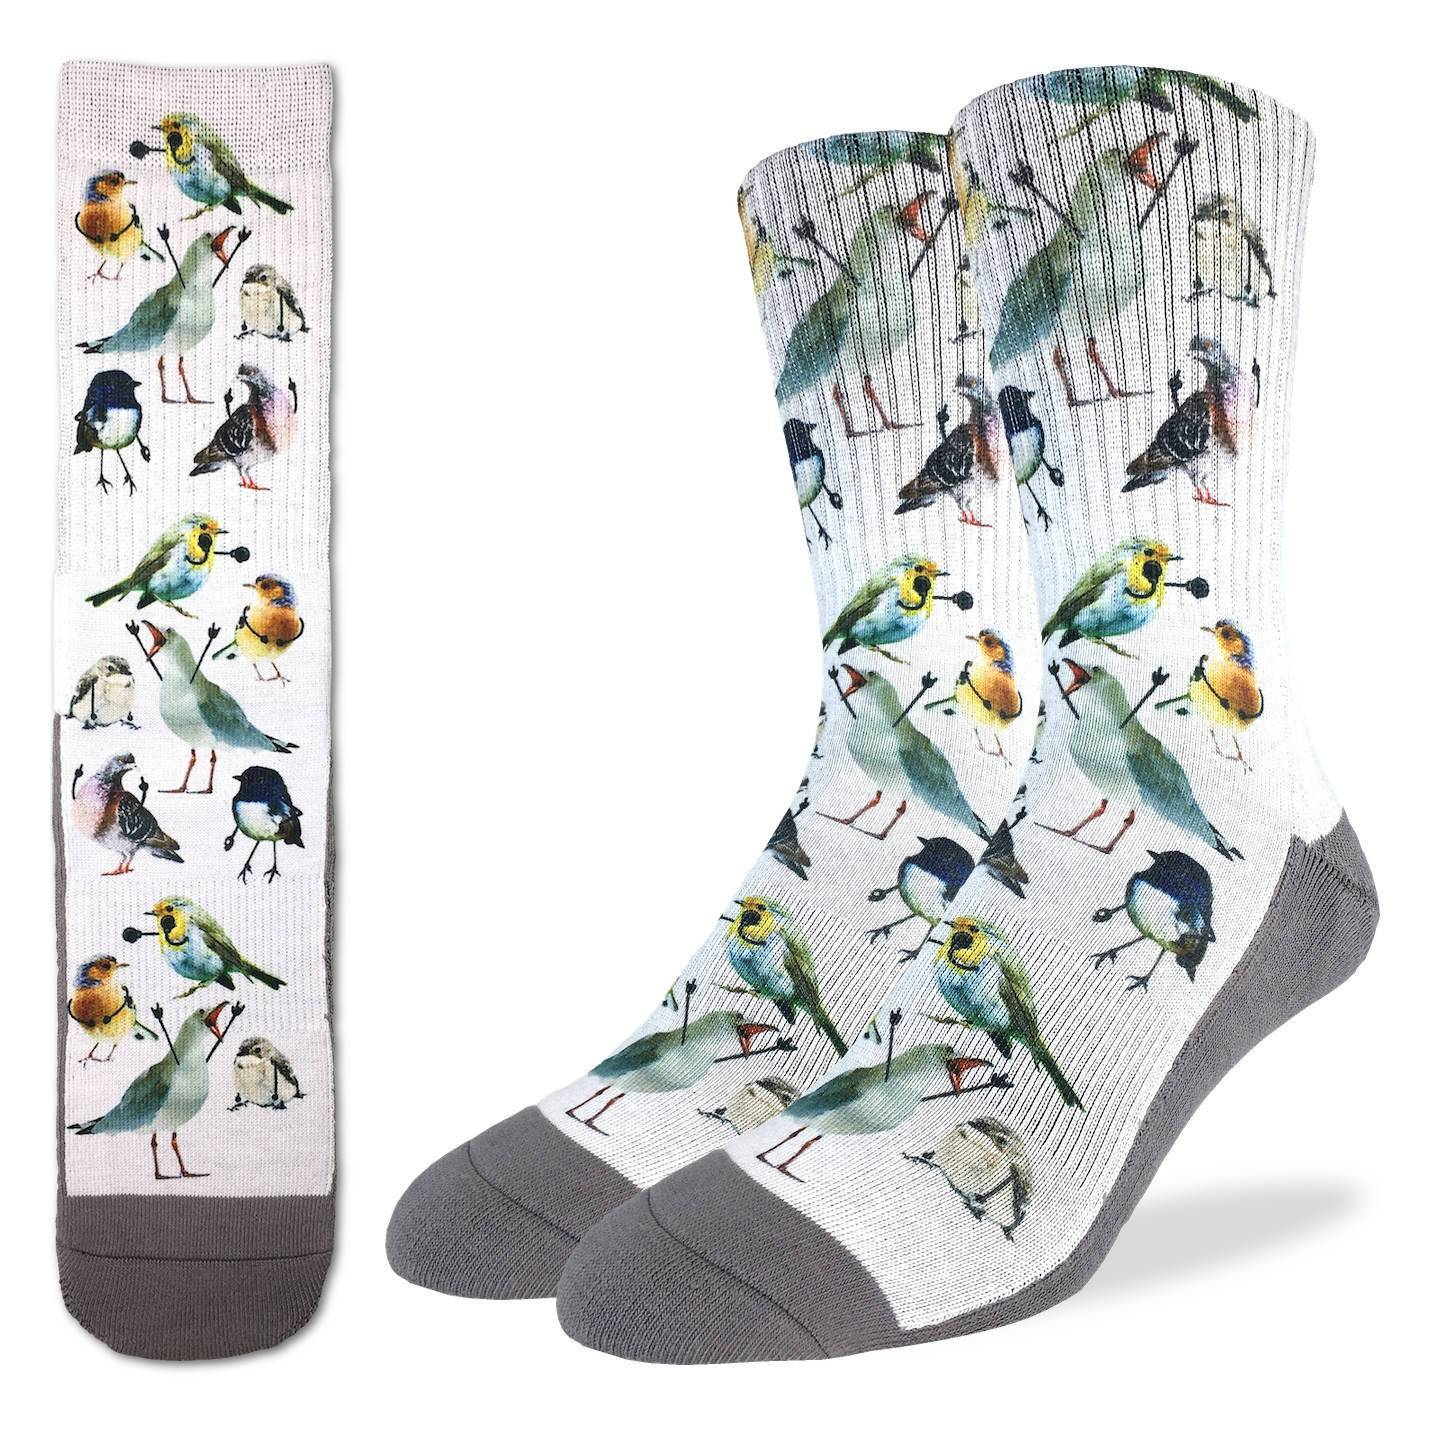 Men's Birds Socks - Good Luck Sock